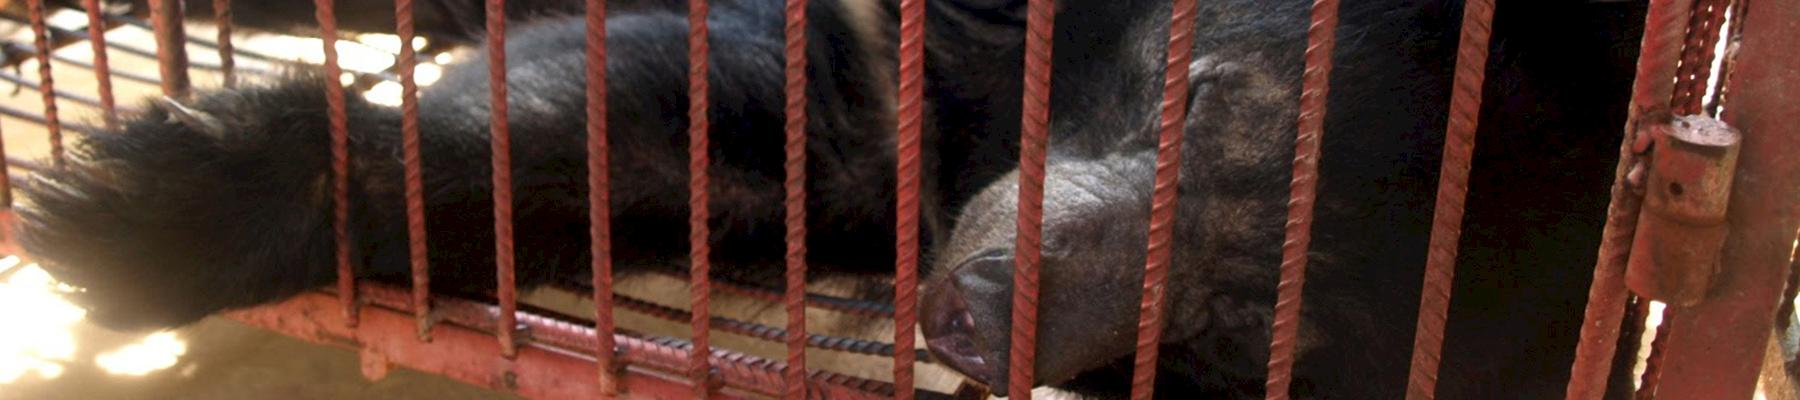 Caged bear in a Lao PDR farm, 2012 © TRAFFIC